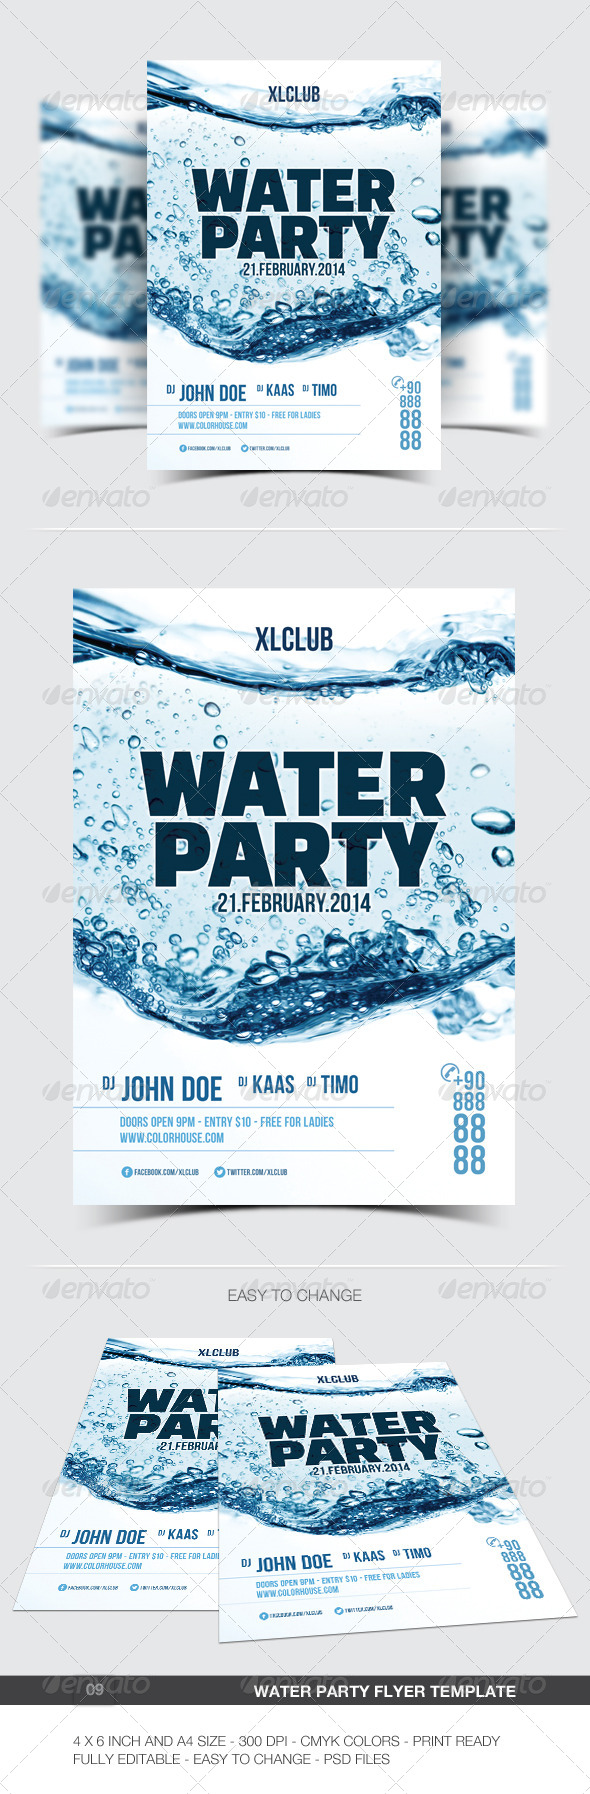 GraphicRiver Water Party Flyer Poster 09 6885398